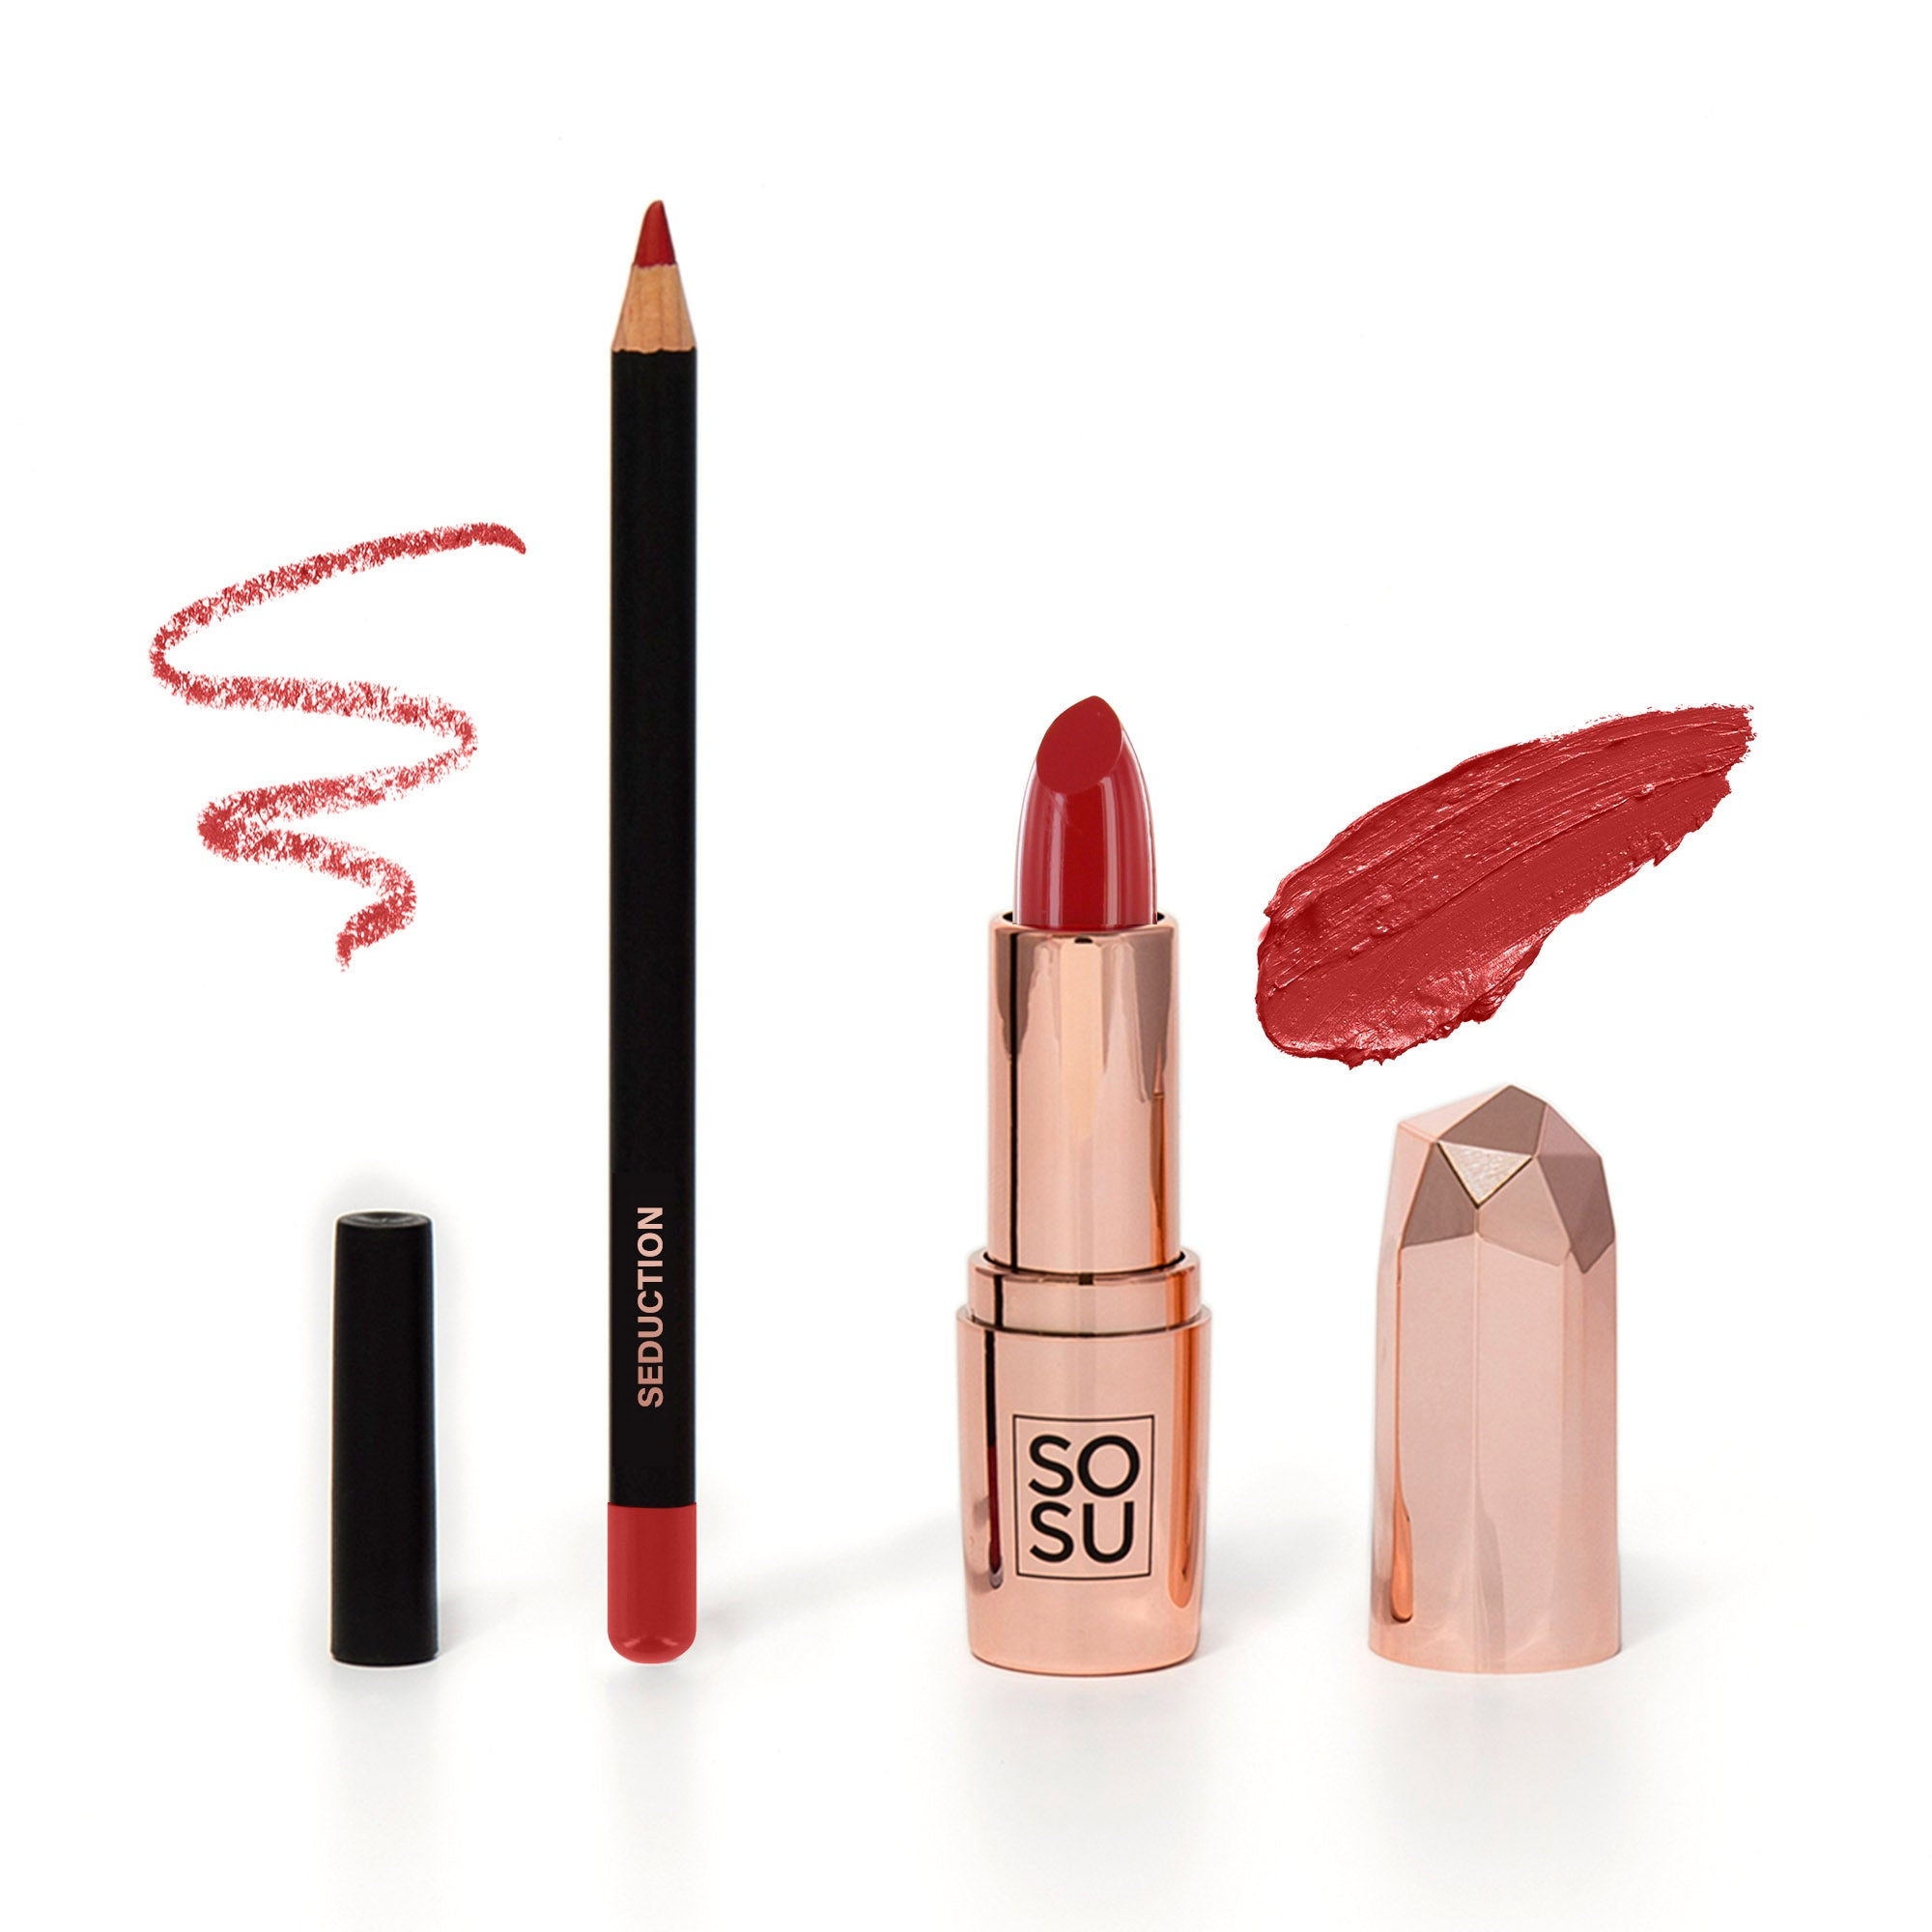 Seduction Lipstick & Lip Liner